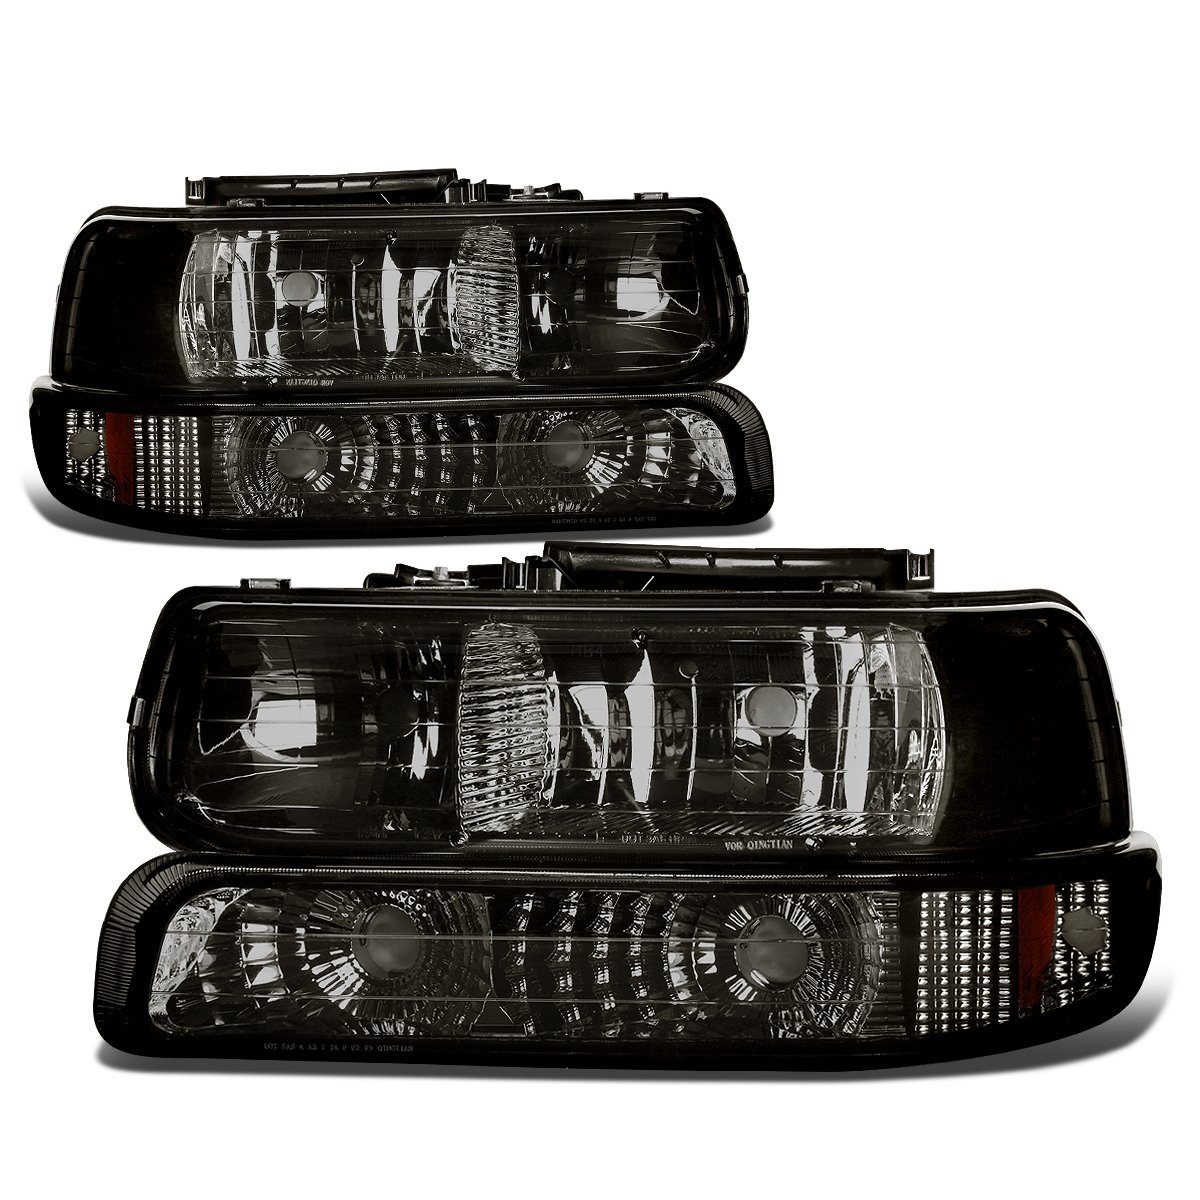 DNA Motoring HL-OH-CS99-4P-SM-AB Headlight Assembly, Driver and Passenger Side